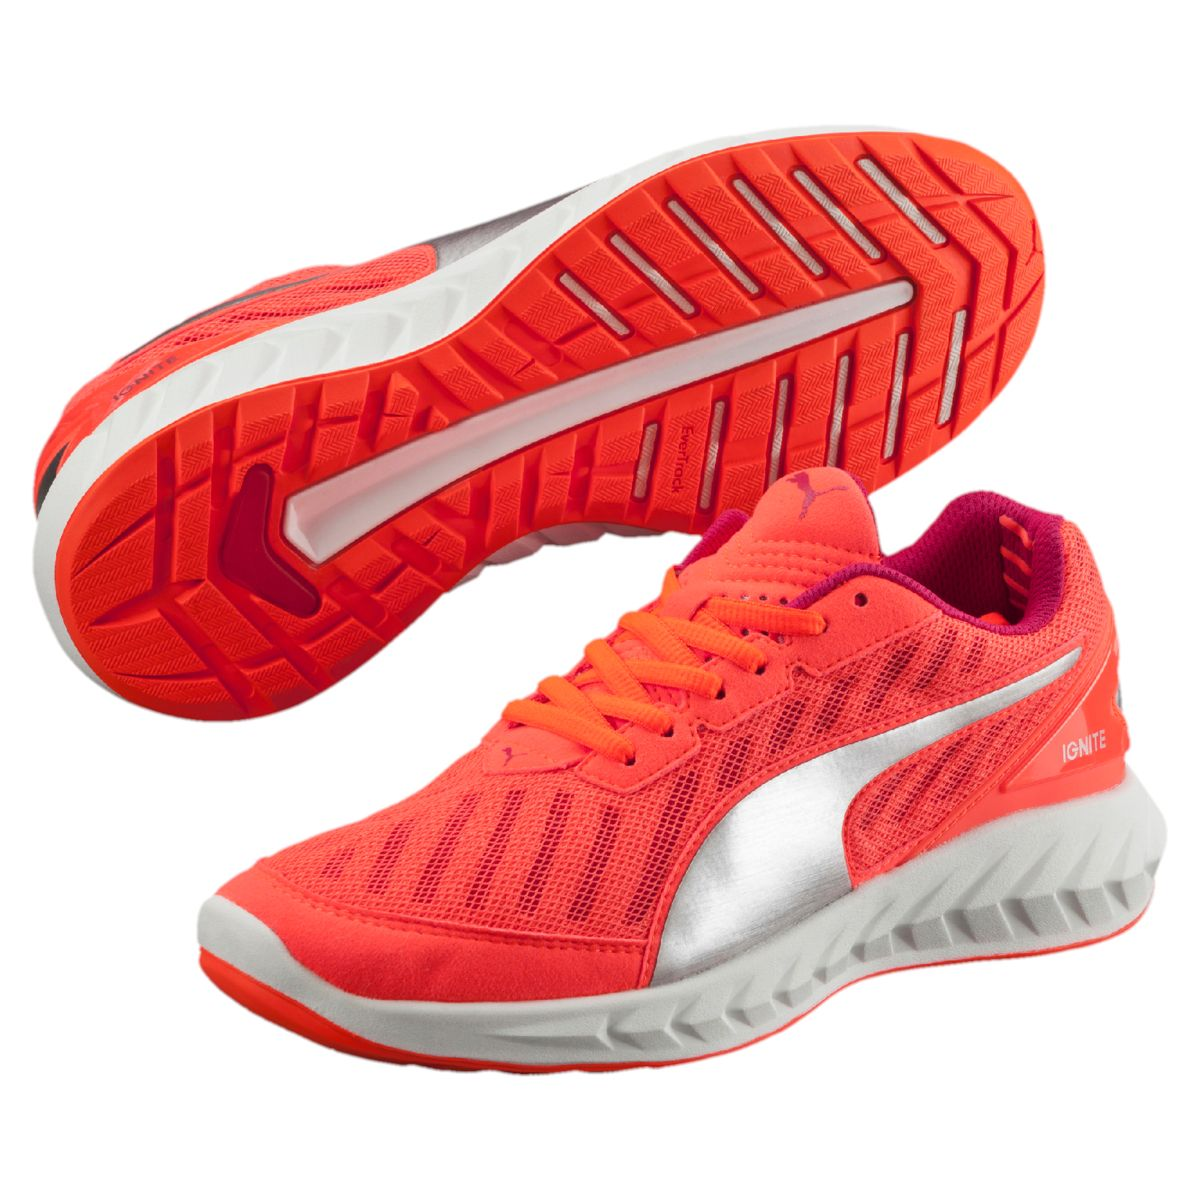 Weights For Running Shoes